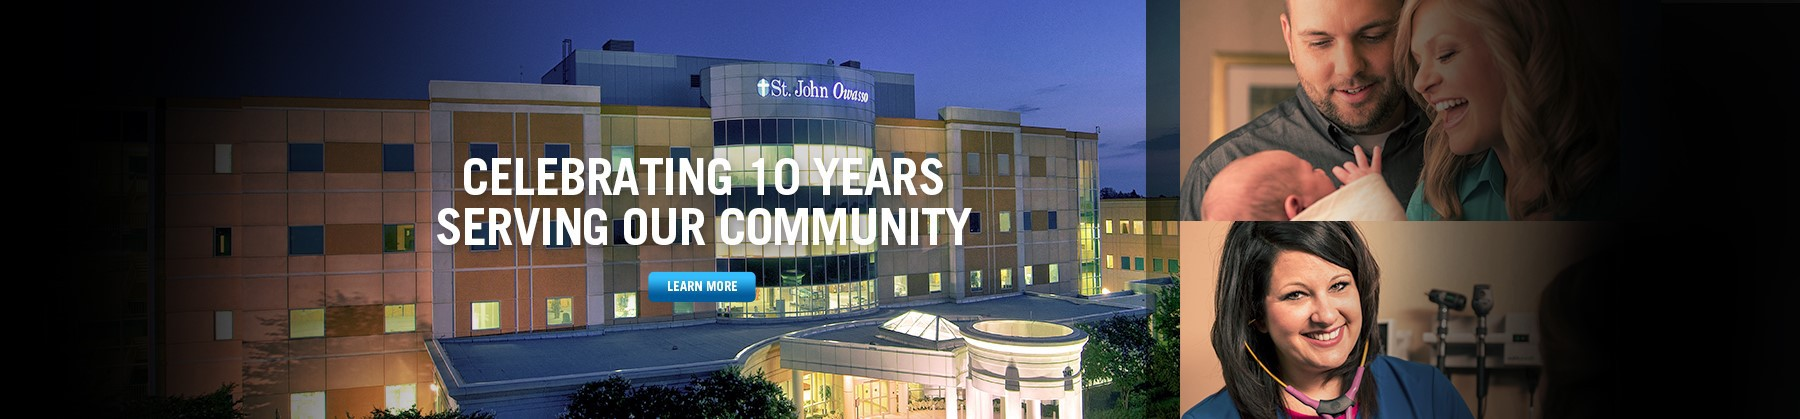 Celebrating 10 Years Serving Our Community